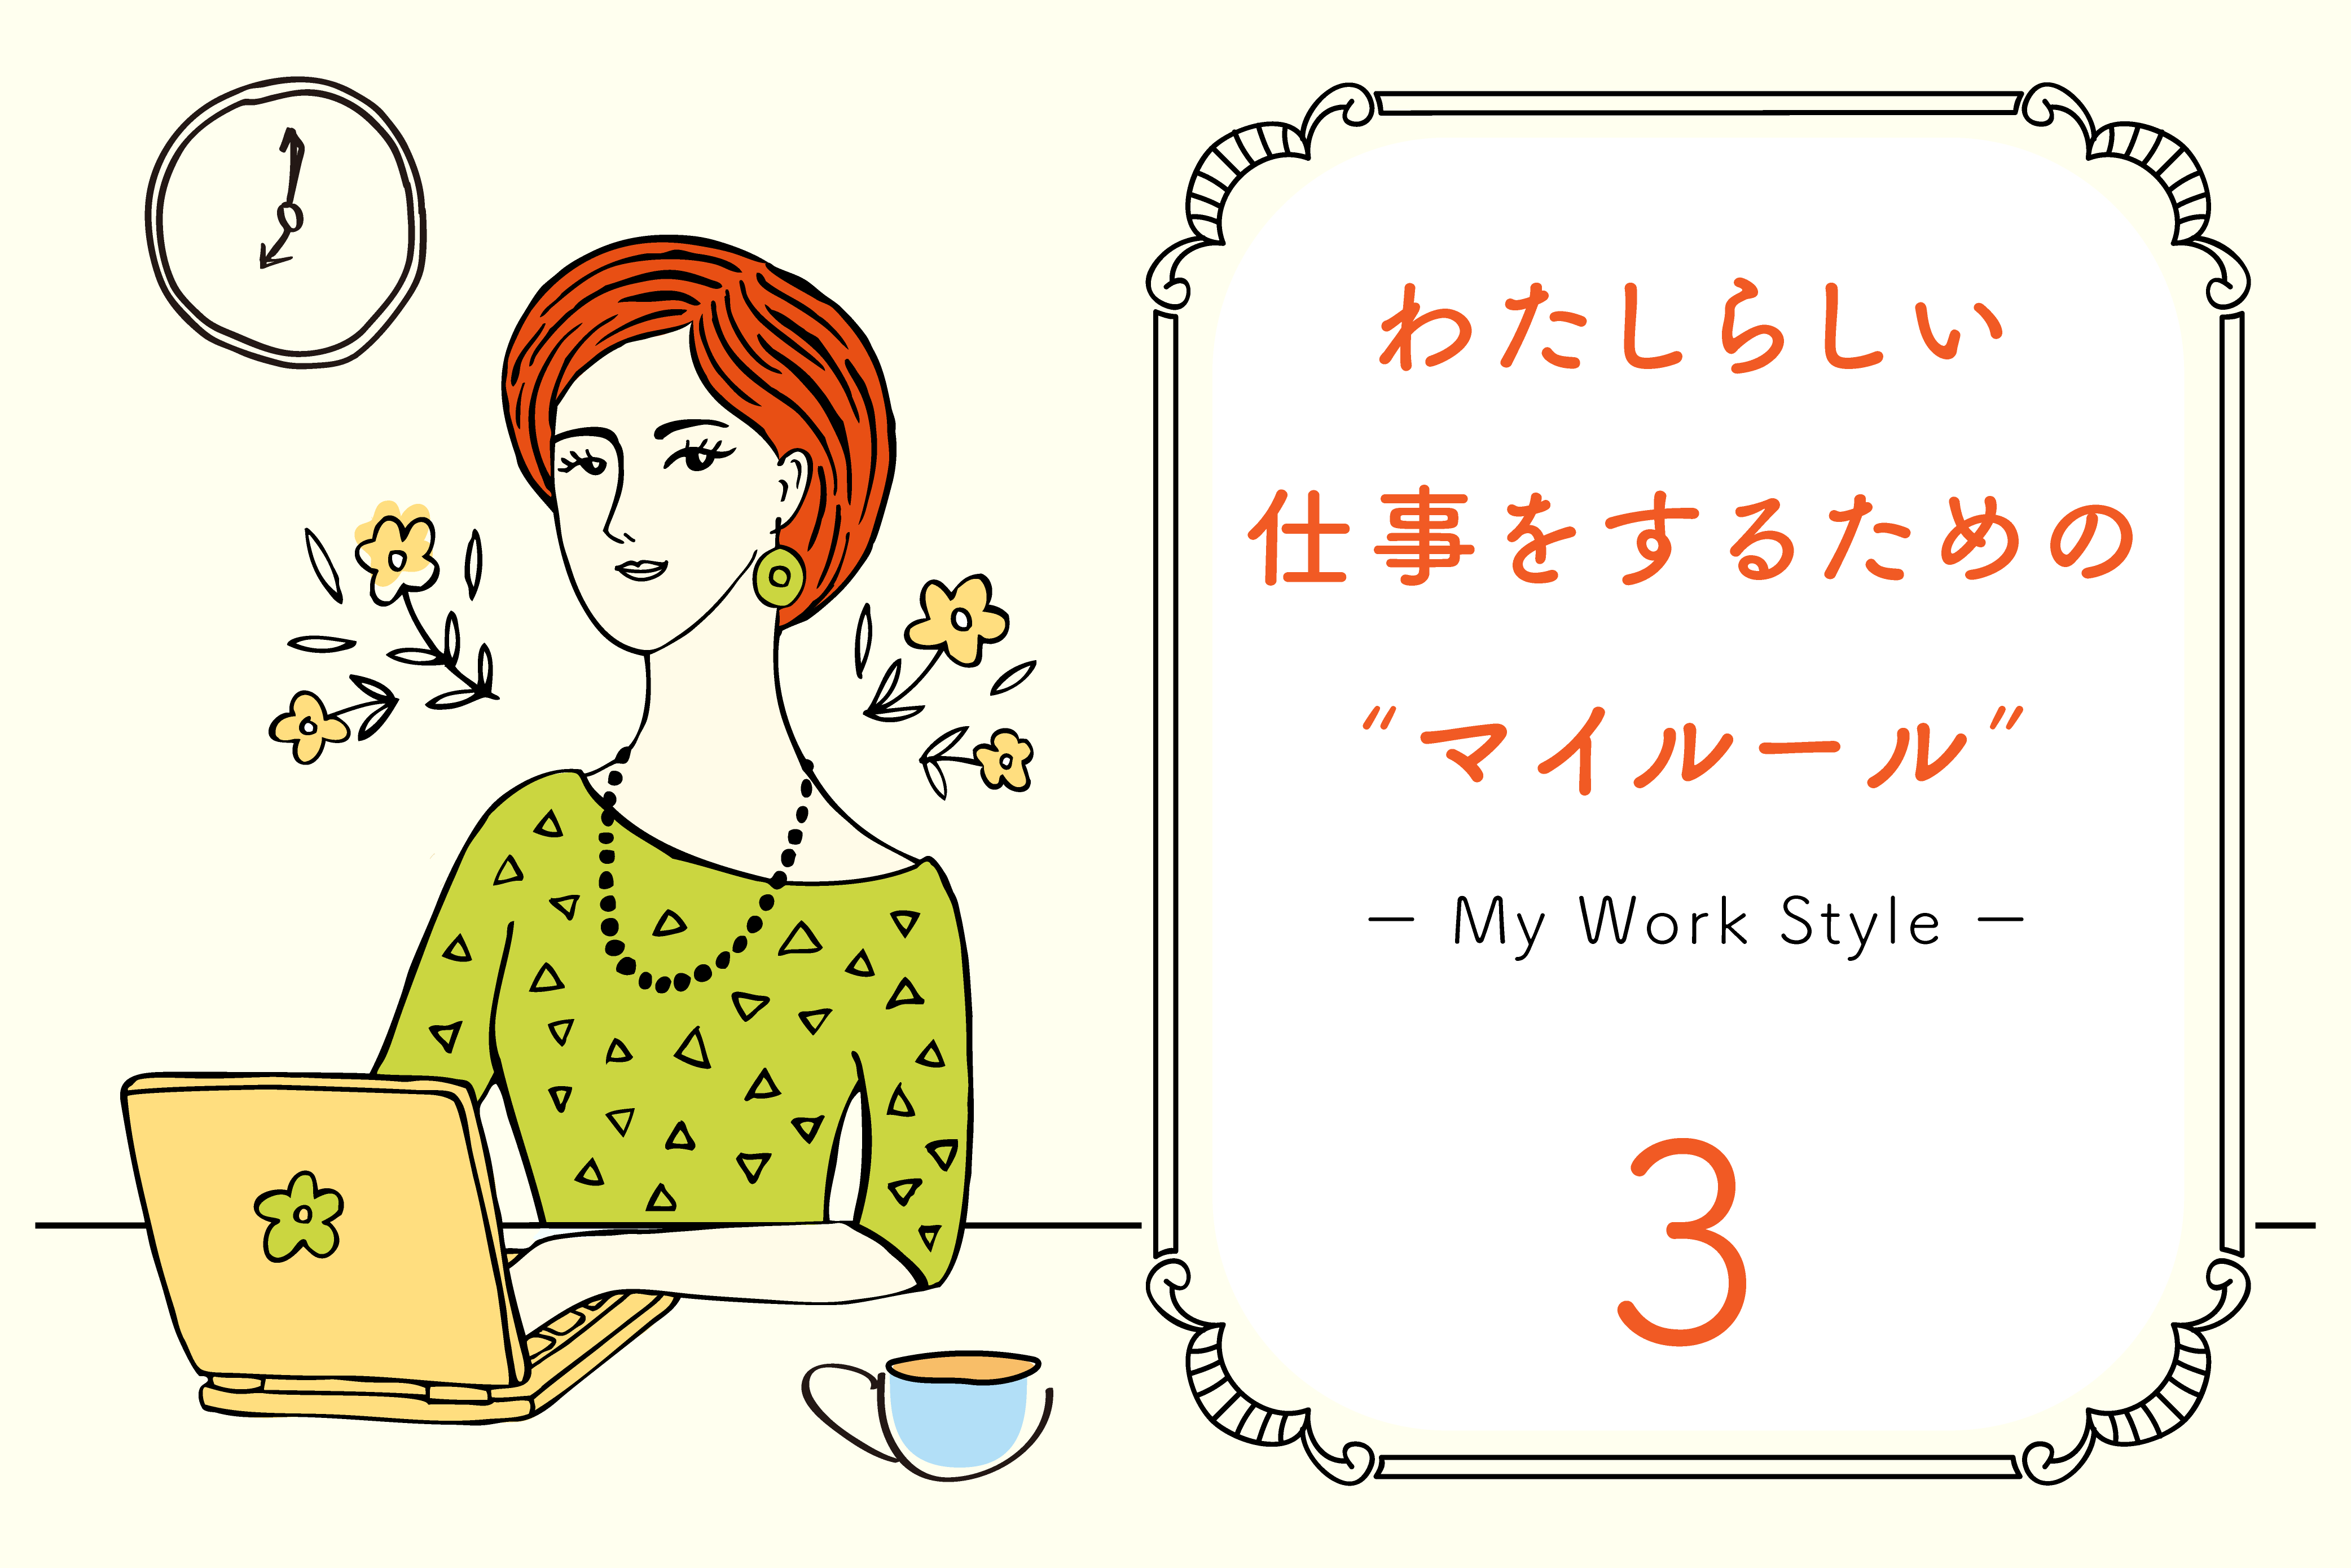 WorkStyle_マイルール_3 (1)